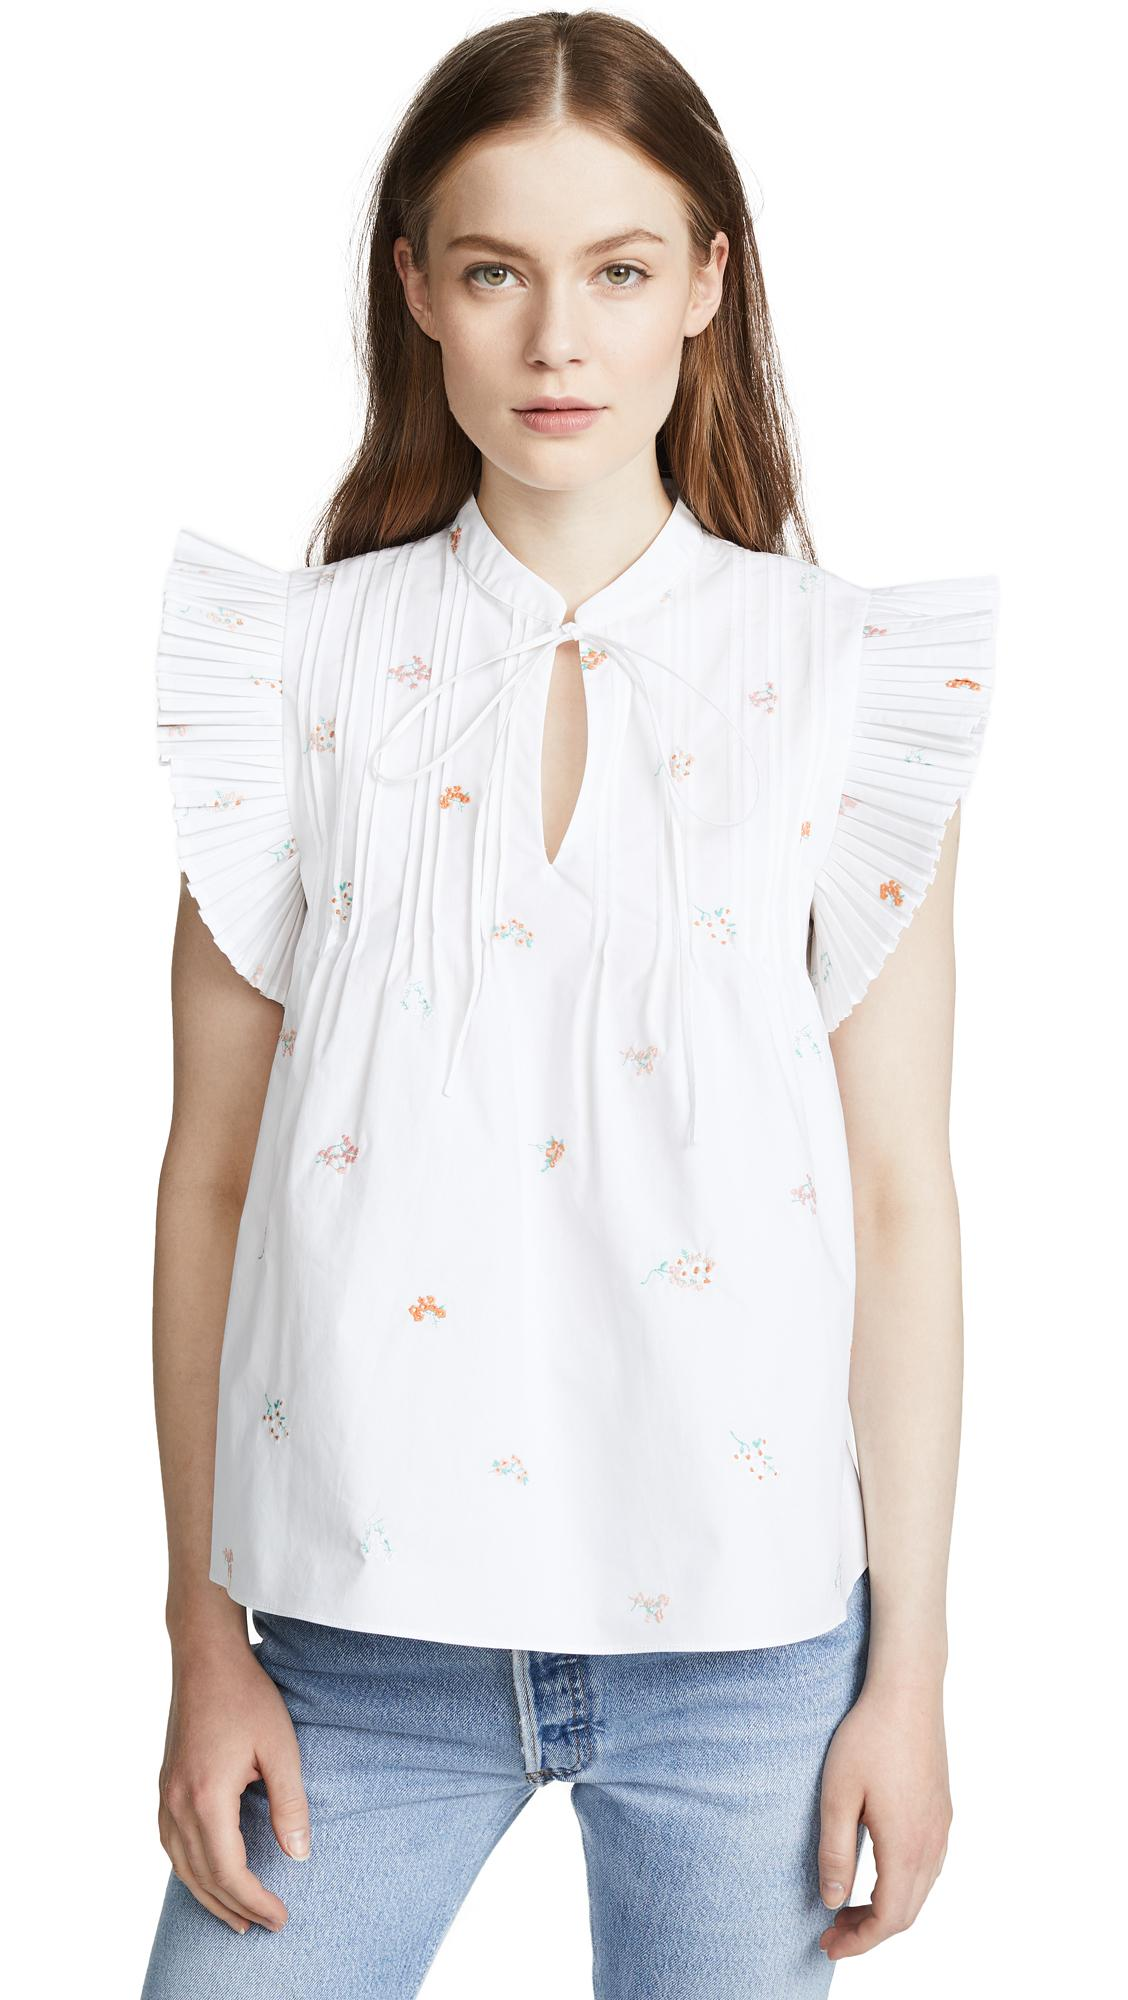 RhiÉ Darci Plise Shirt In Floral Embroidery